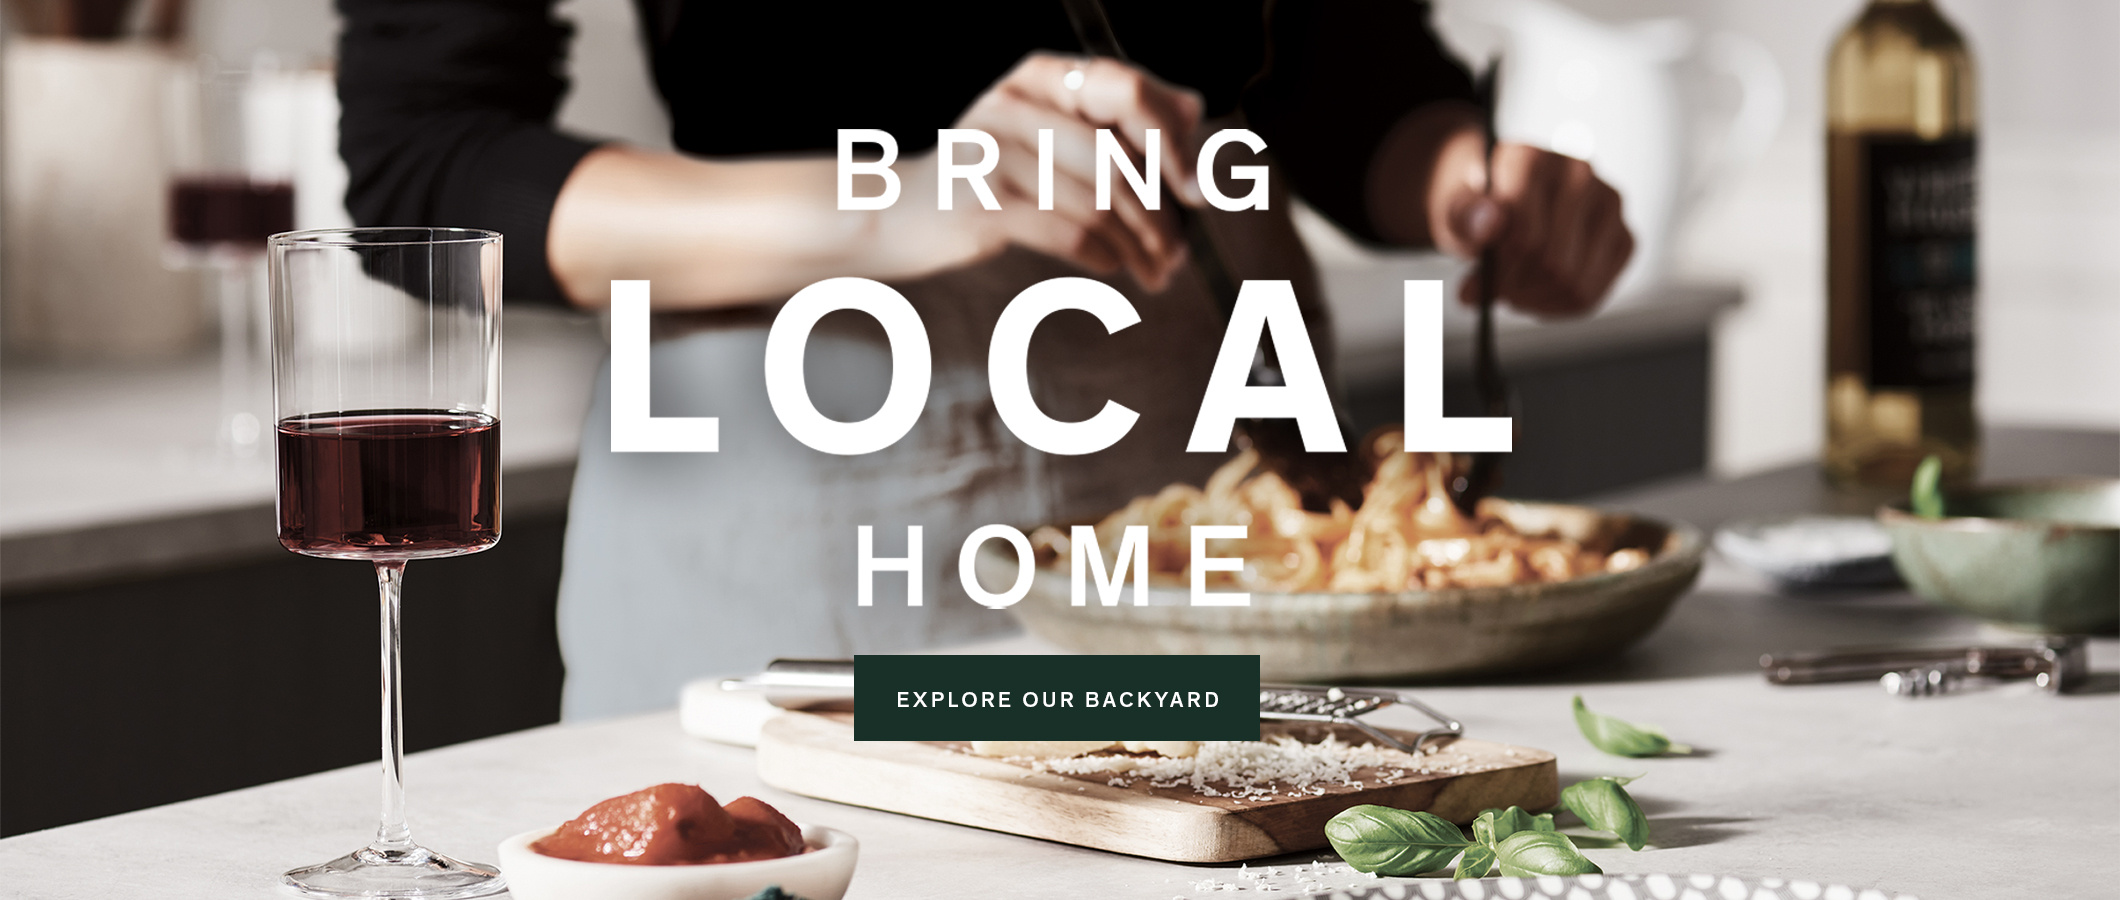 Bring Local Home.  EXPLORE OUR BACKYARD